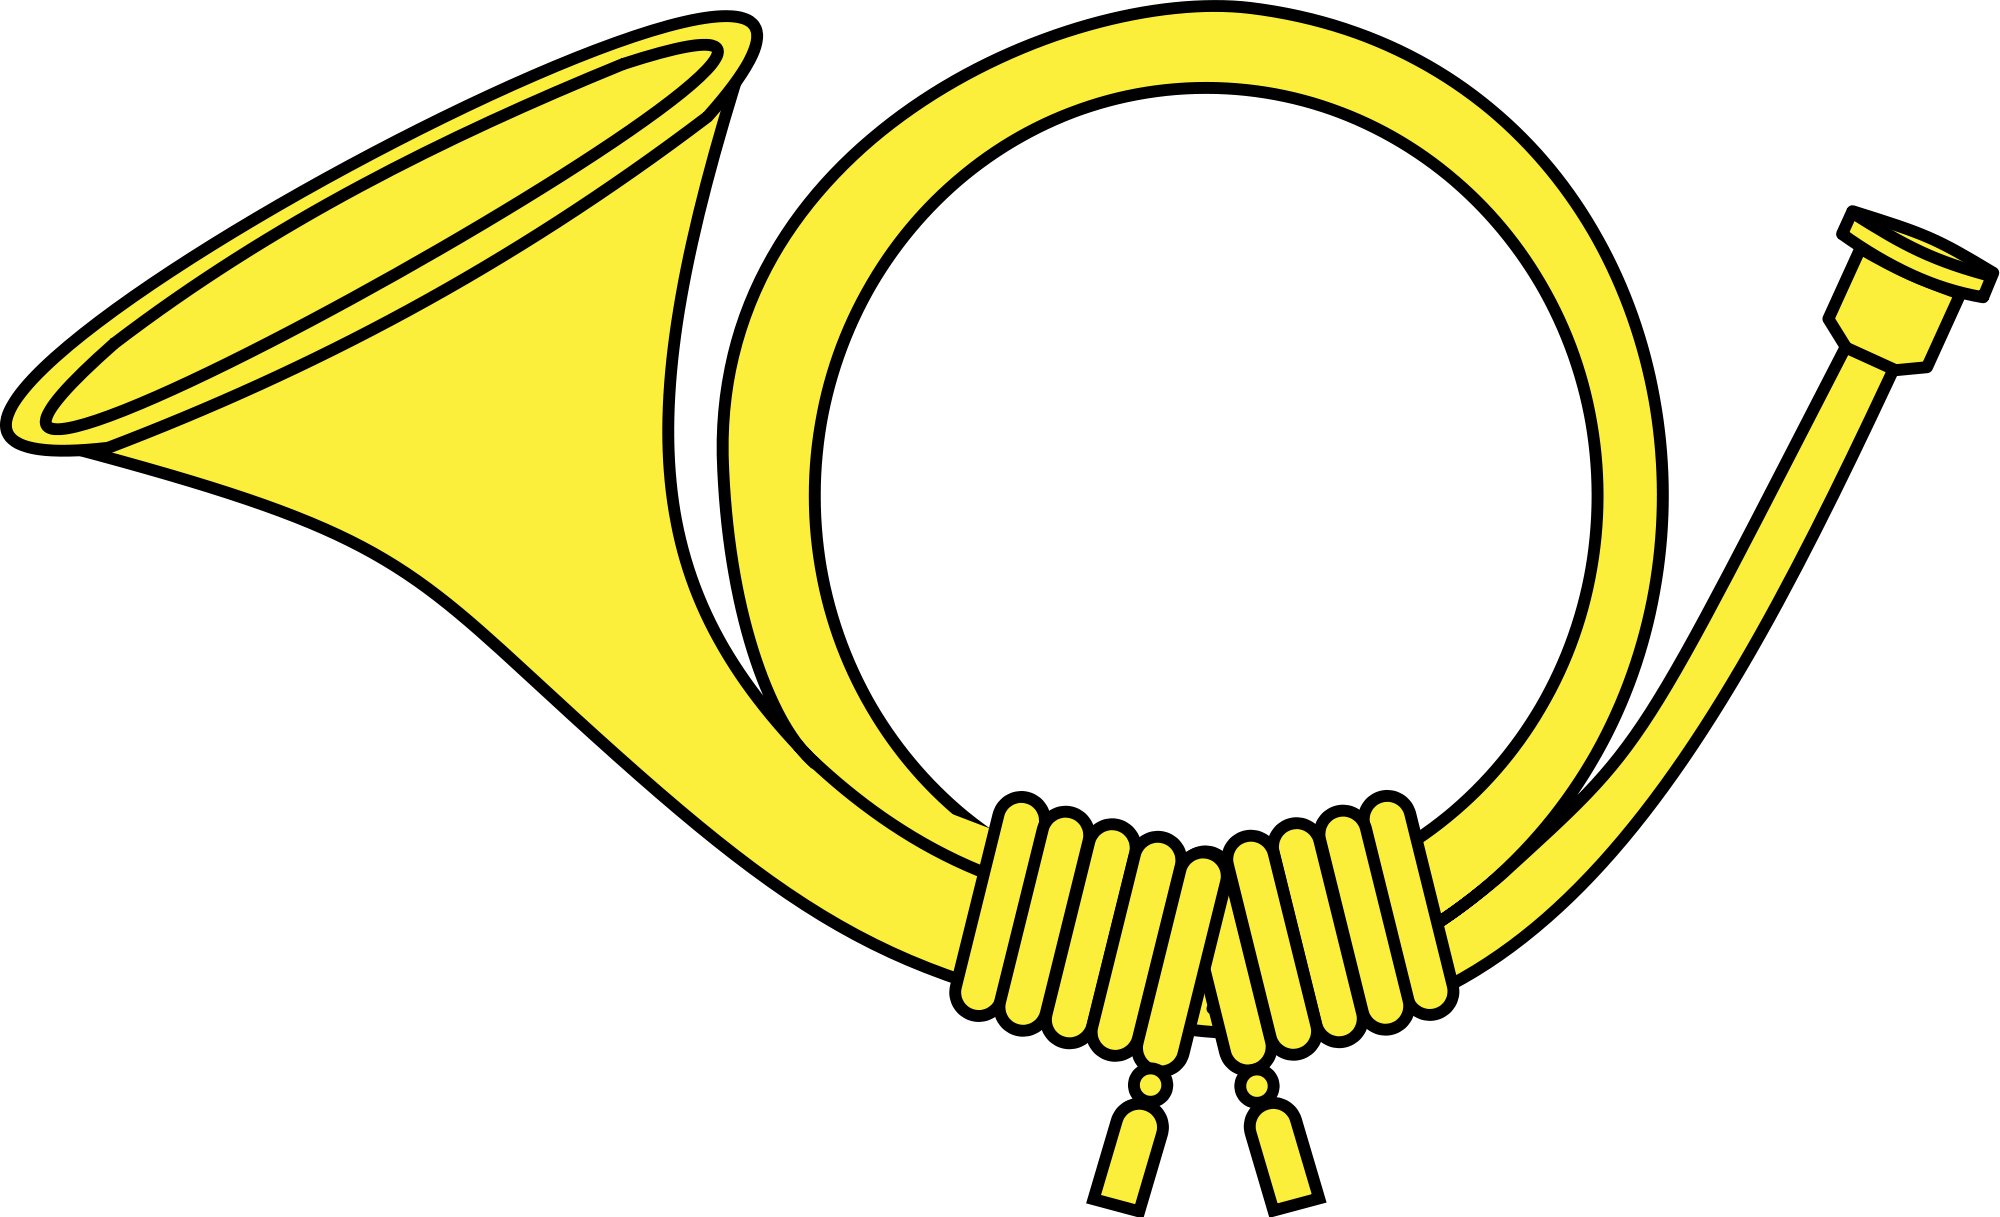 jpg royalty free download Horn clipart. Yellow post transparent png